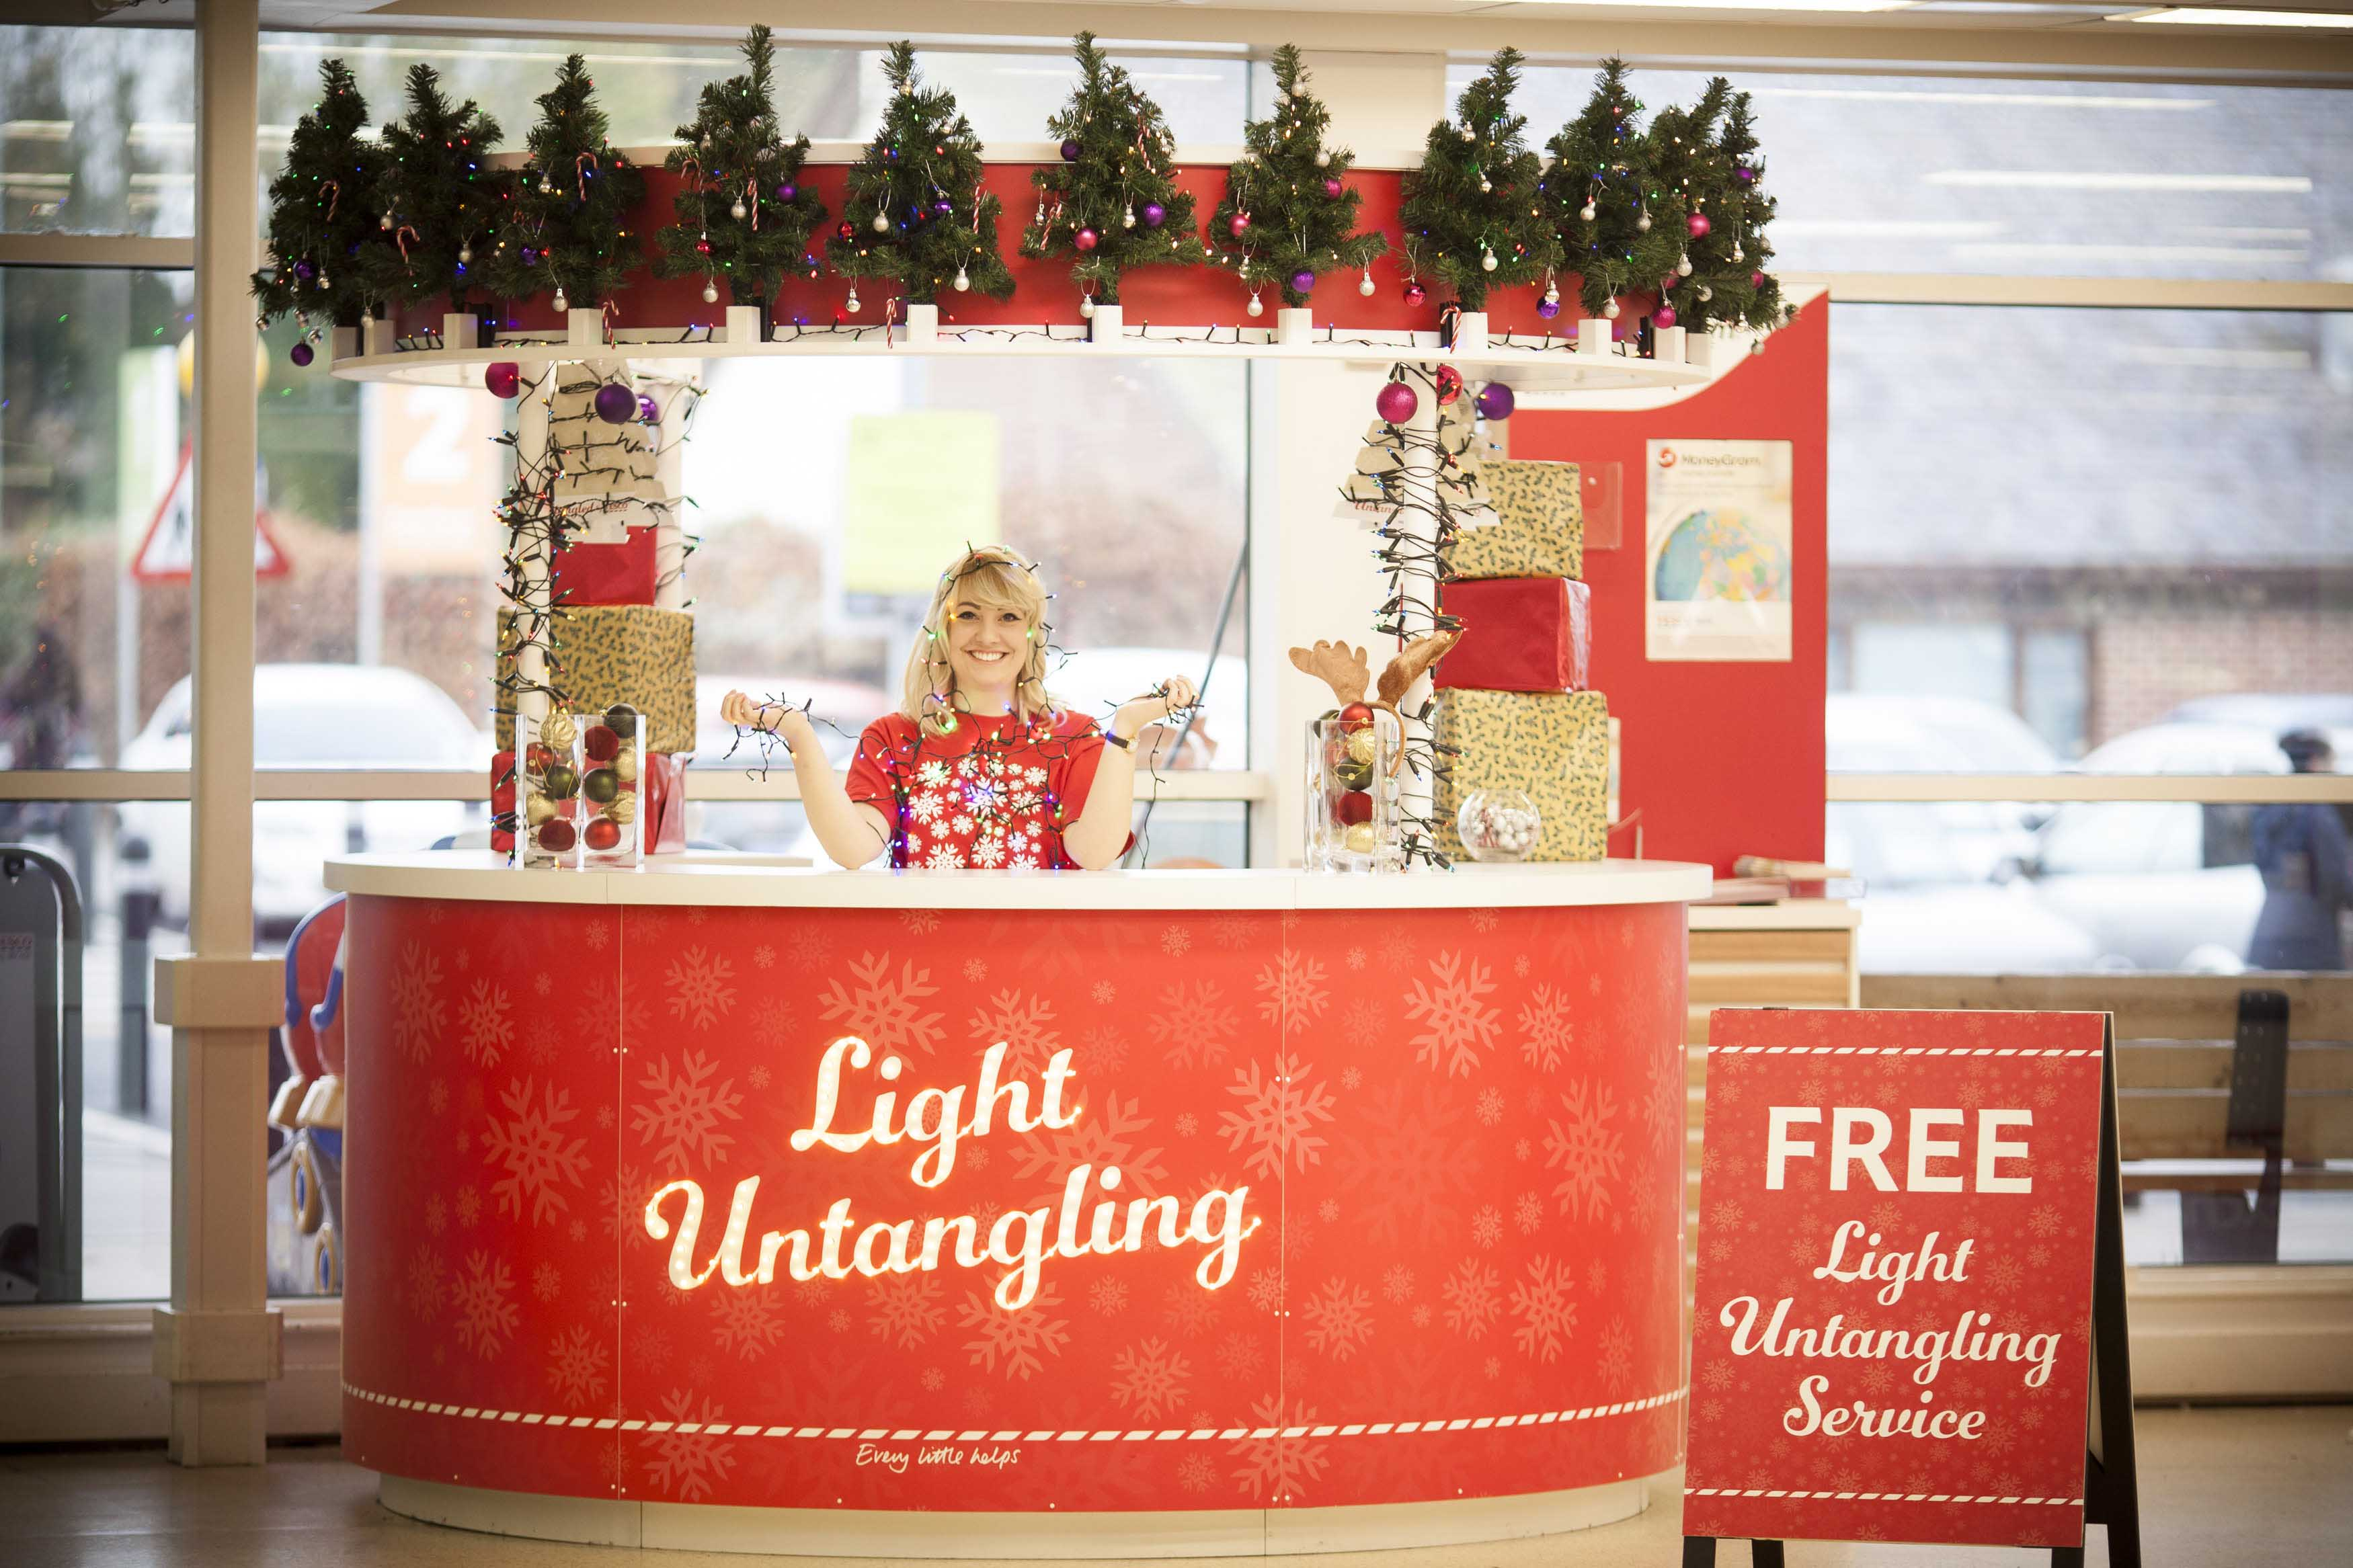 Tesco Extra store in Wrexham, North Wales hires UK's first ever Christmas Tree Lights Untangler, Anya Mugridge